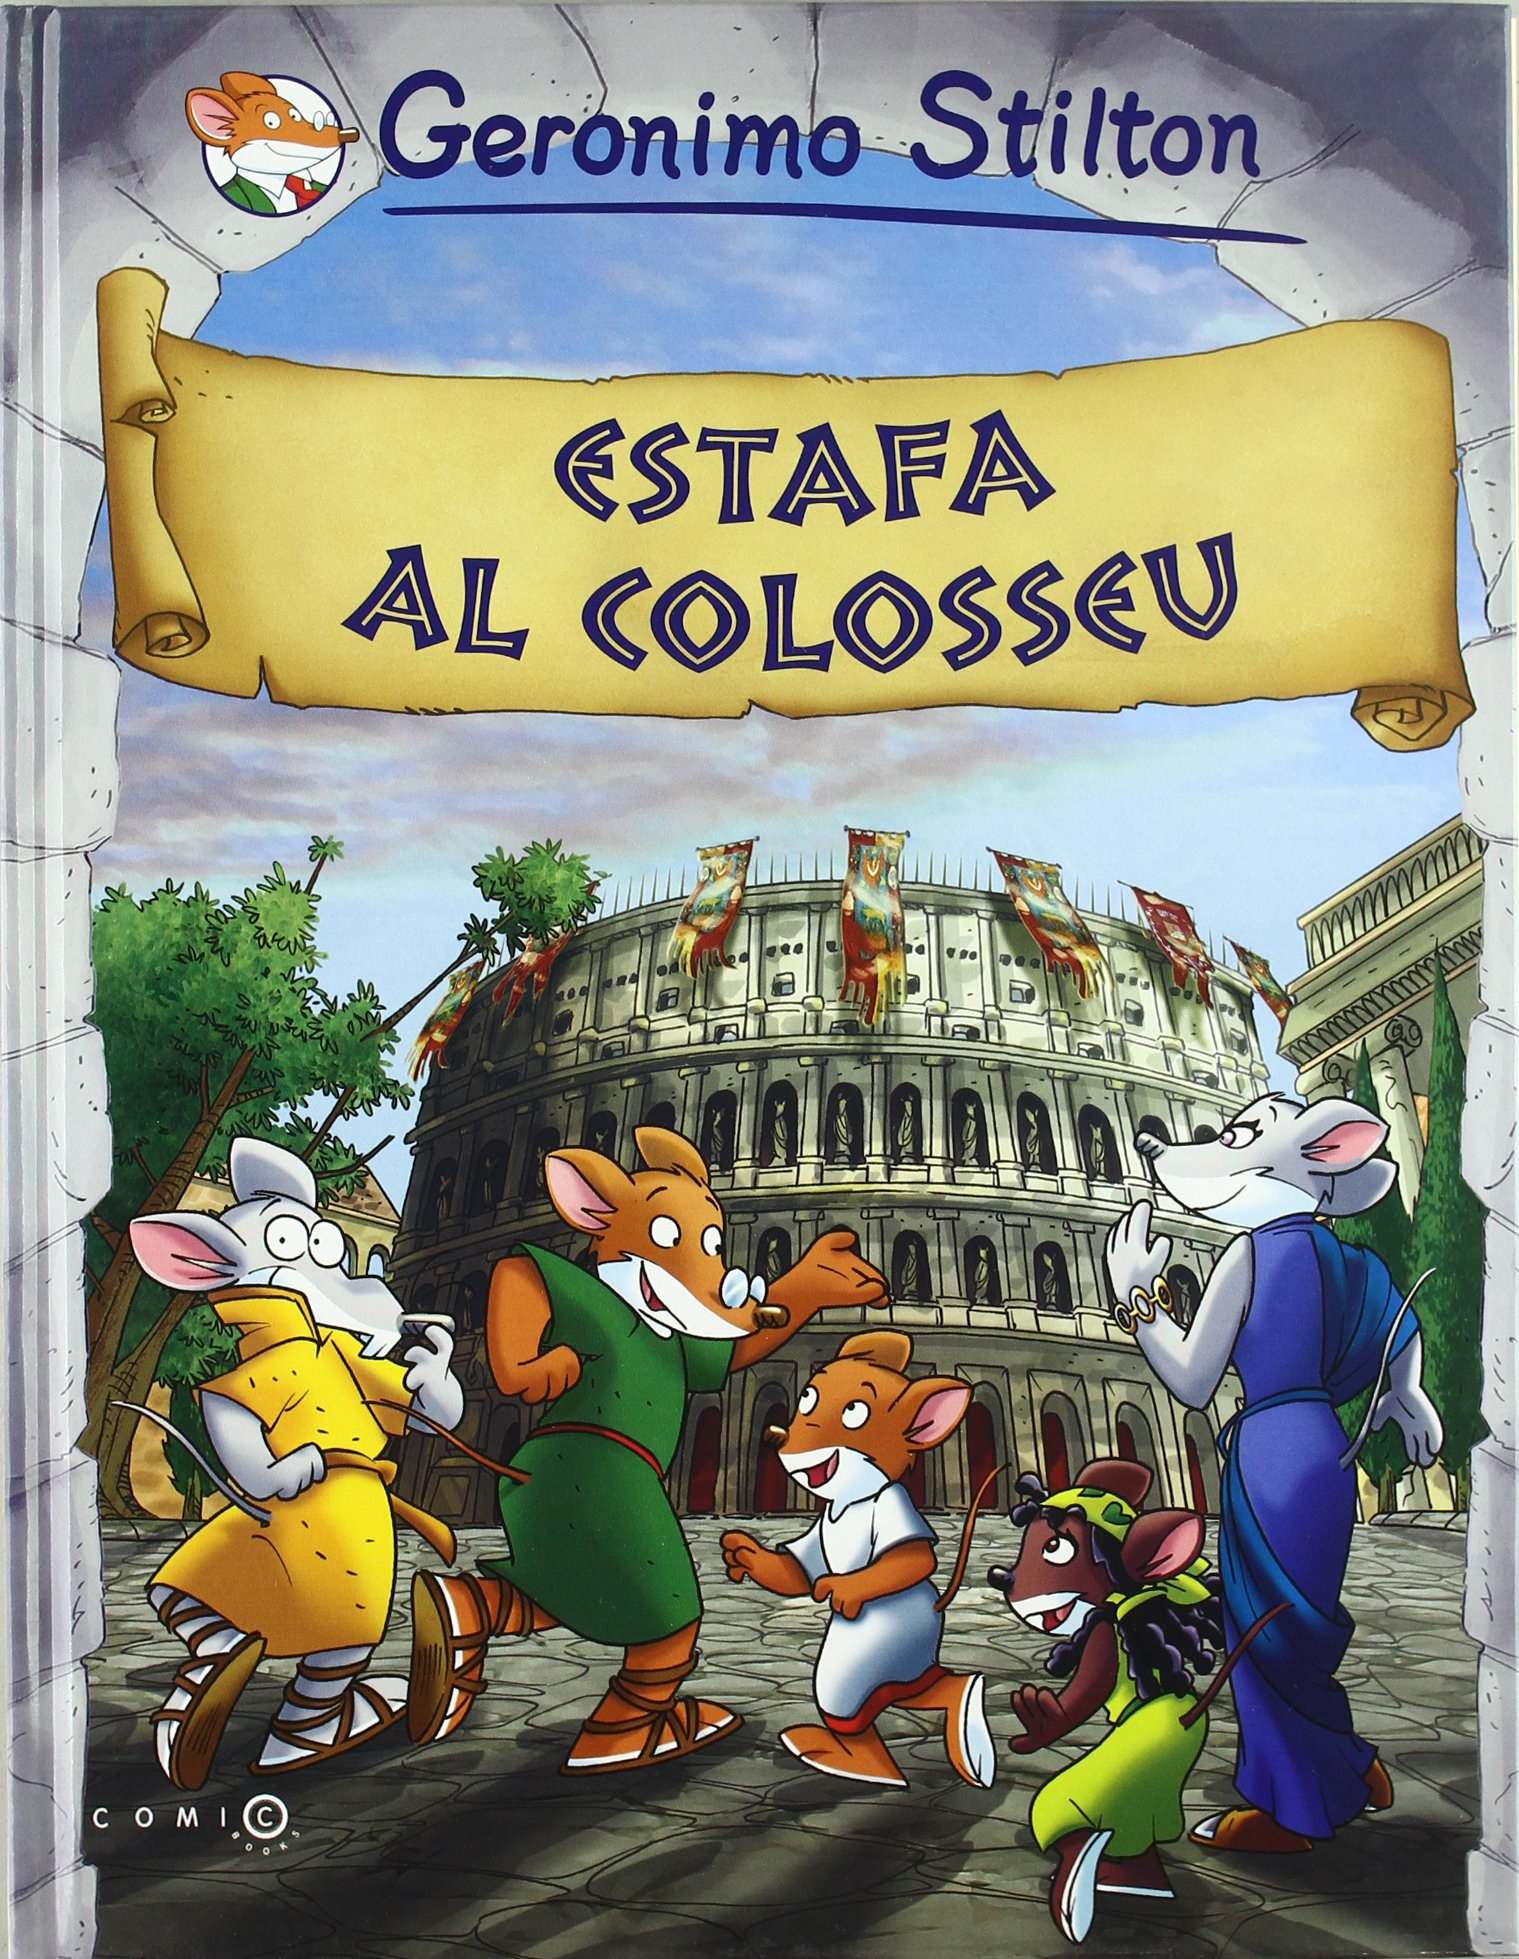 Estafa al Colosseu (Comic Books): Amazon.es: Stilton, Geronimo ...